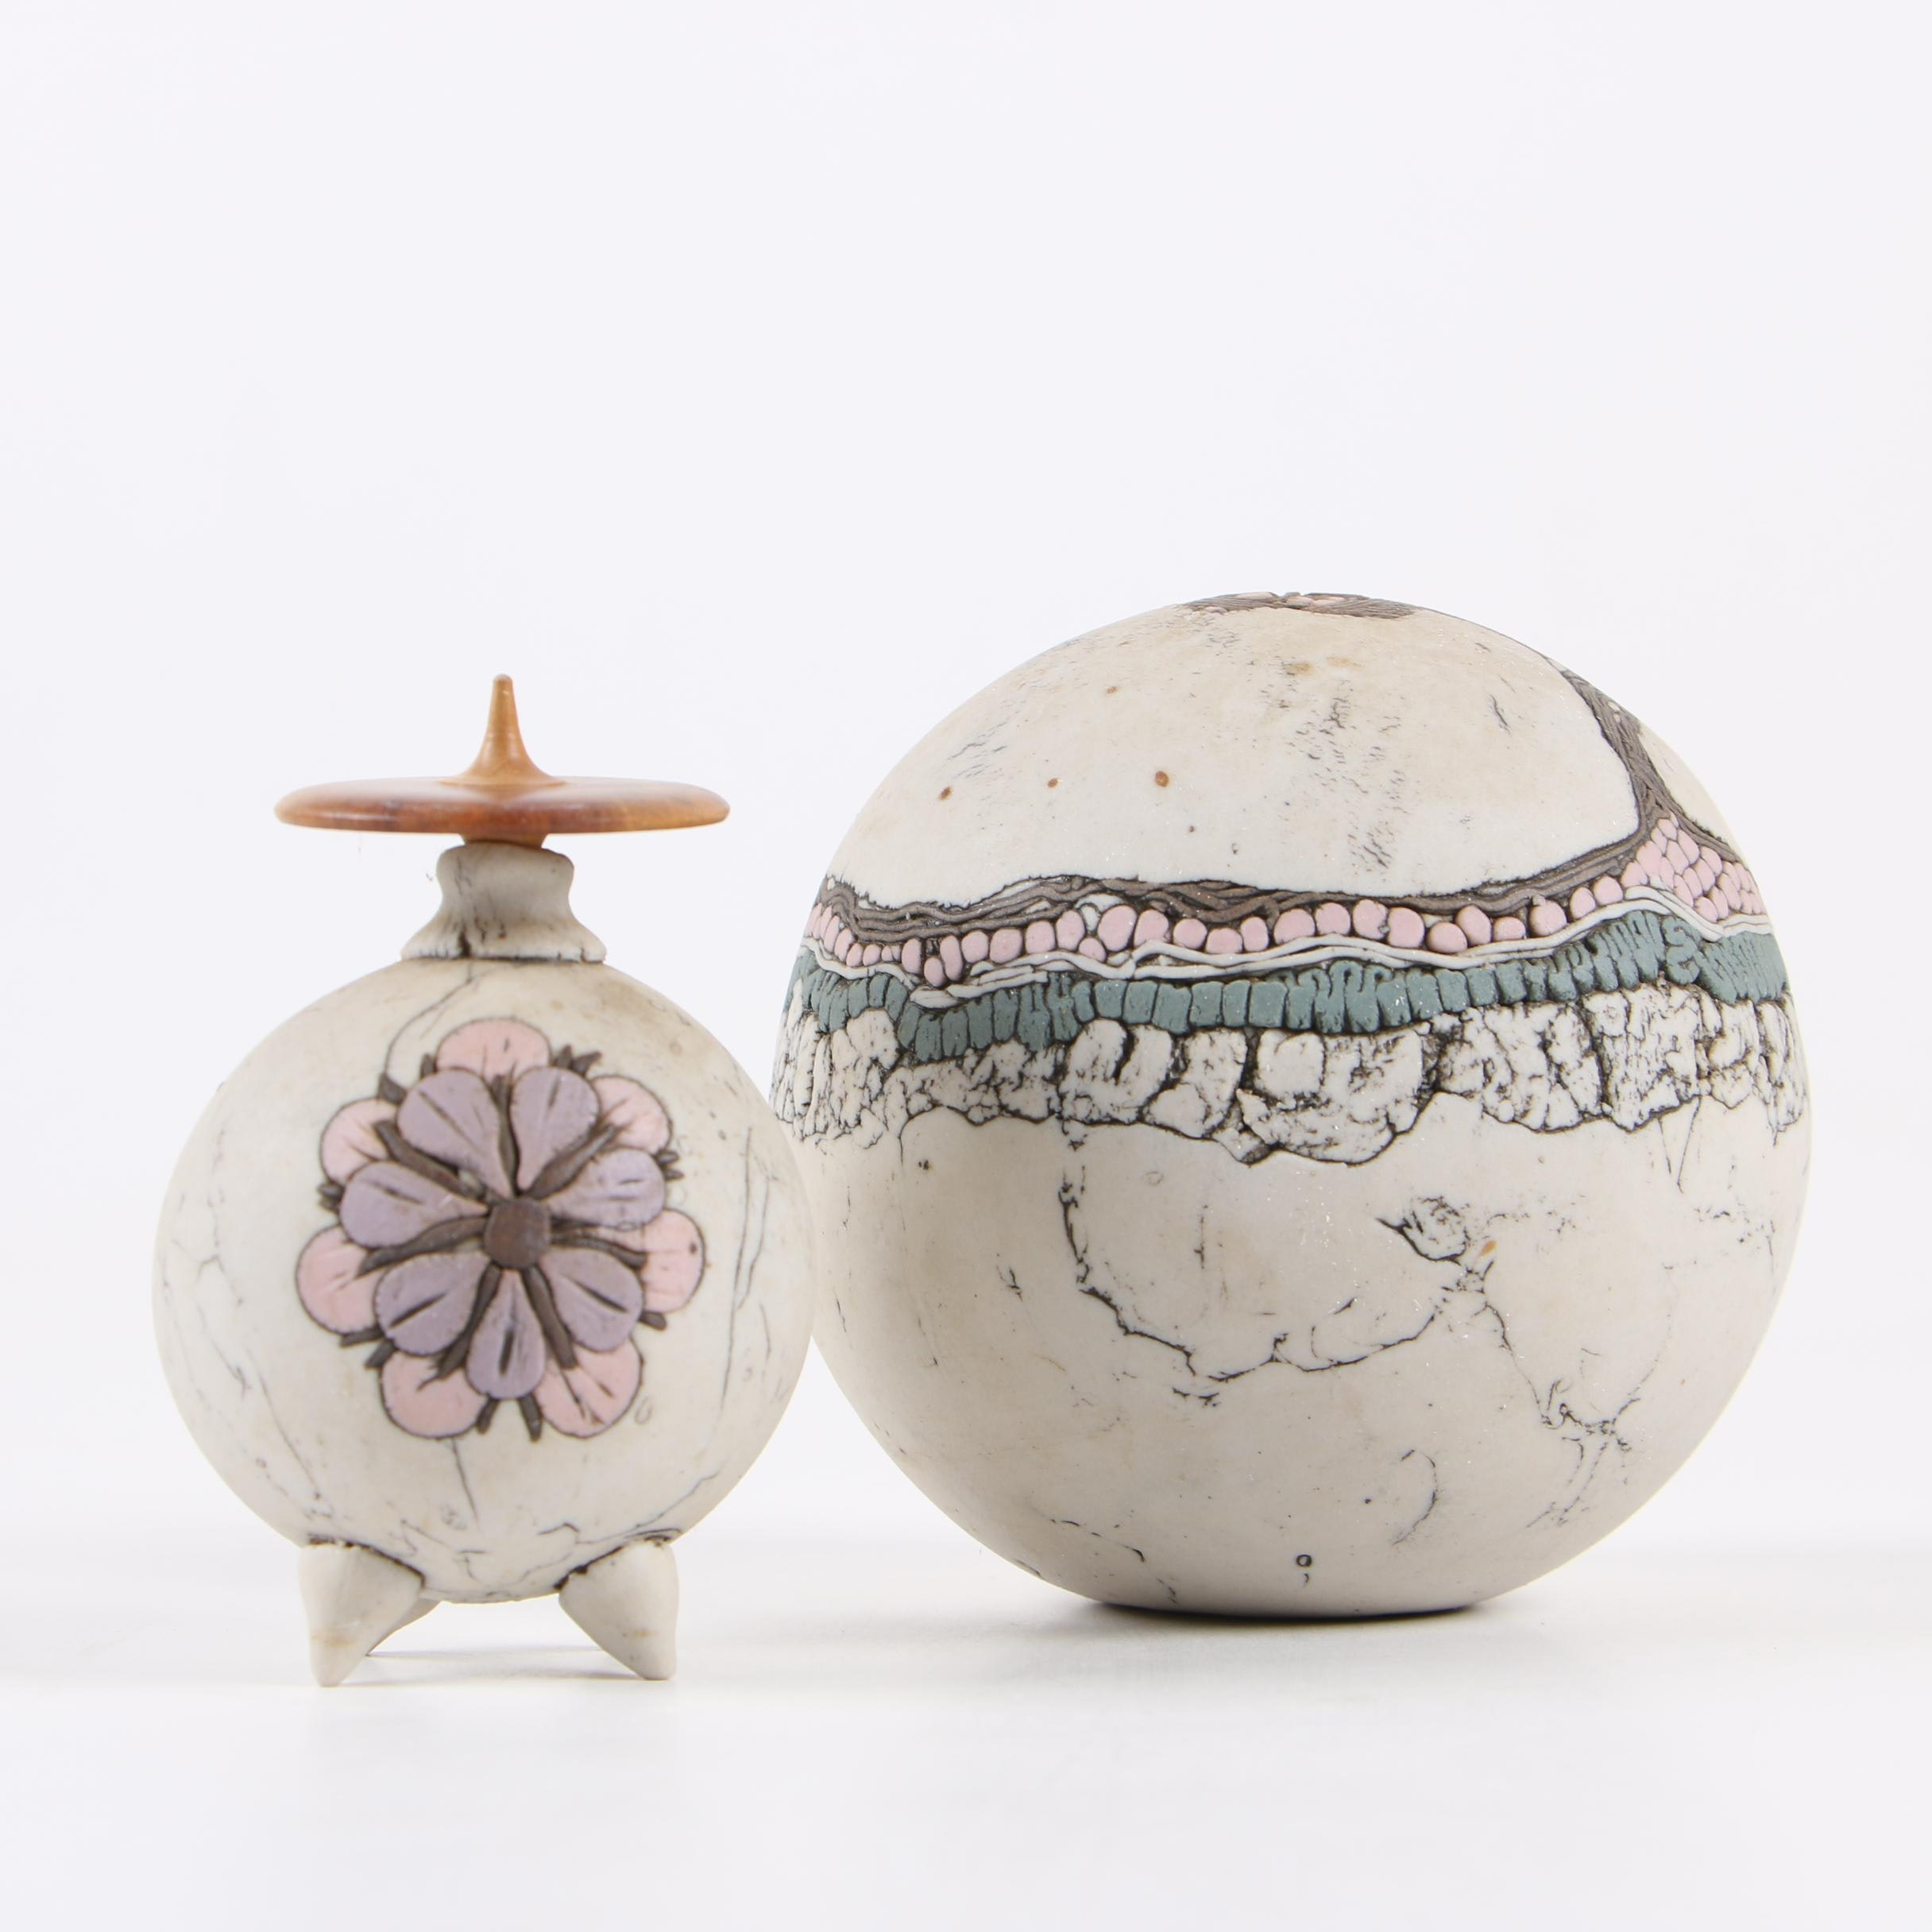 Romilla Batra Handbuilt Porcelain Sphere and Vessel, Late 20th Century